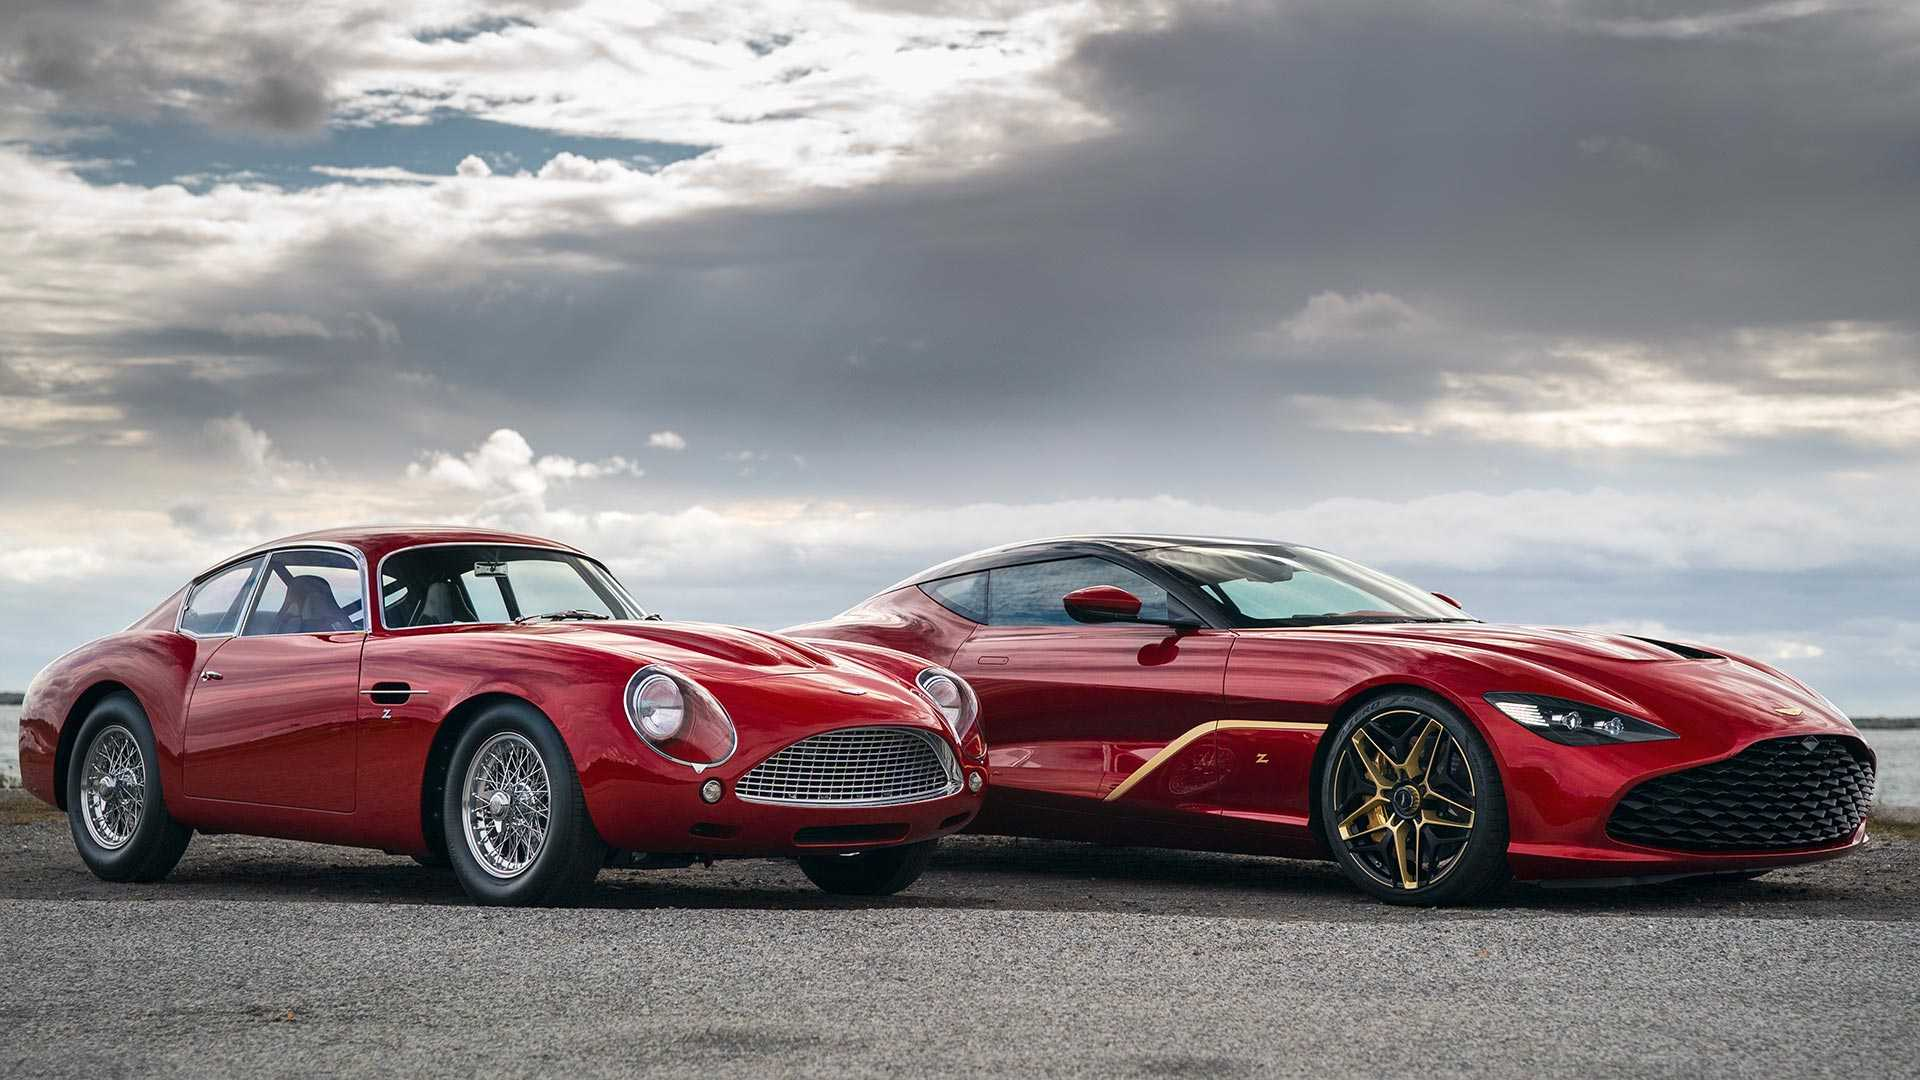 Aston Martin Dbs Gt Zagato Makes Real World Debut In Stunning Style